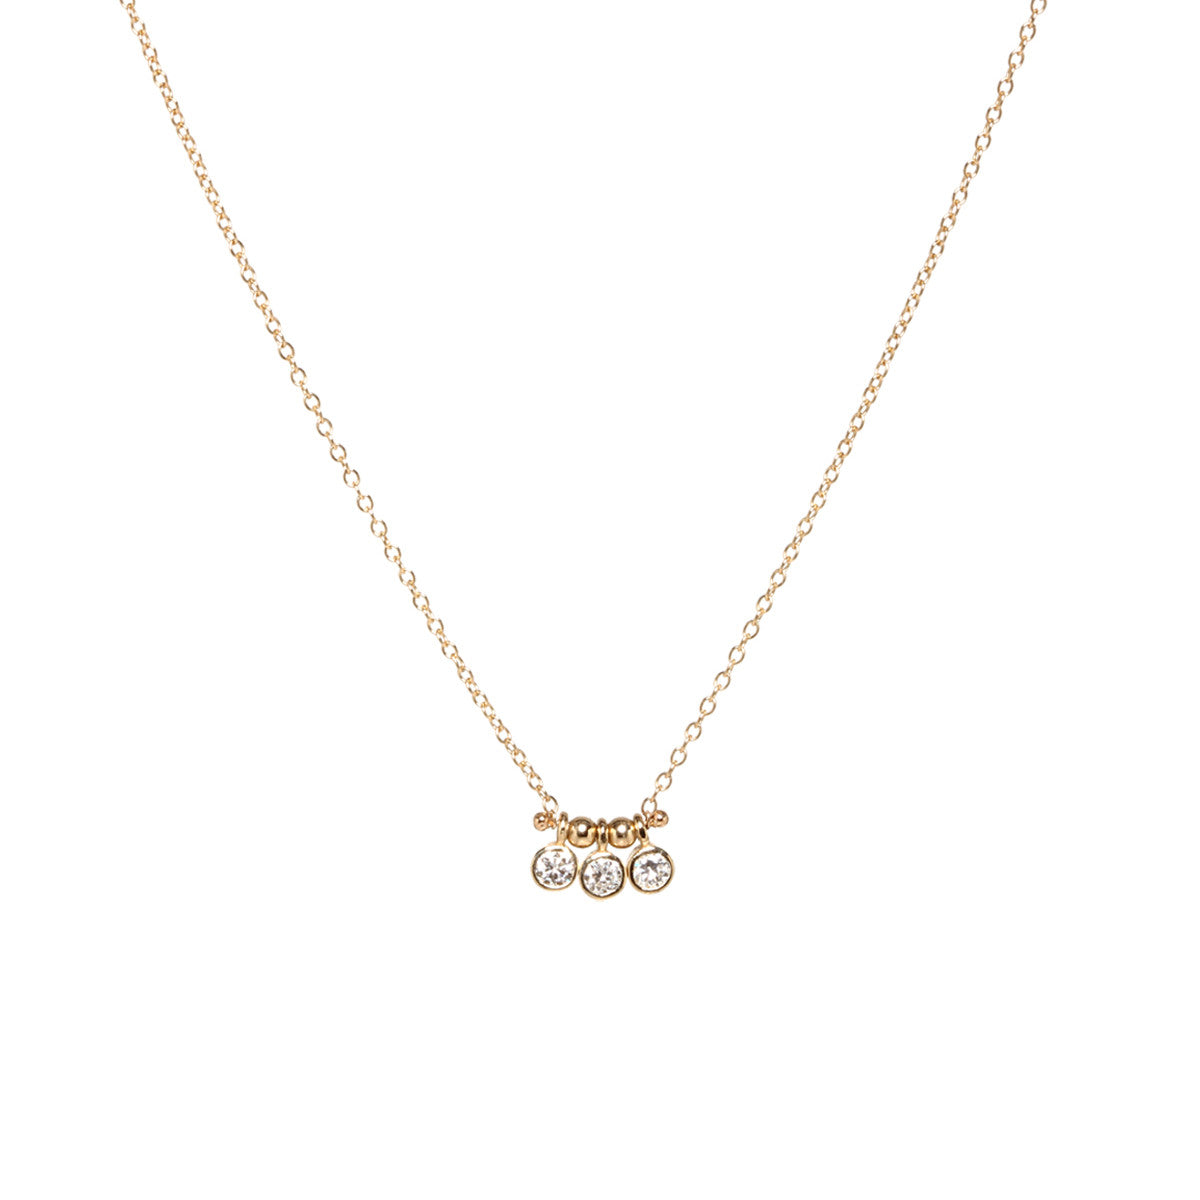 14k 3 bezel set diamond choker necklace